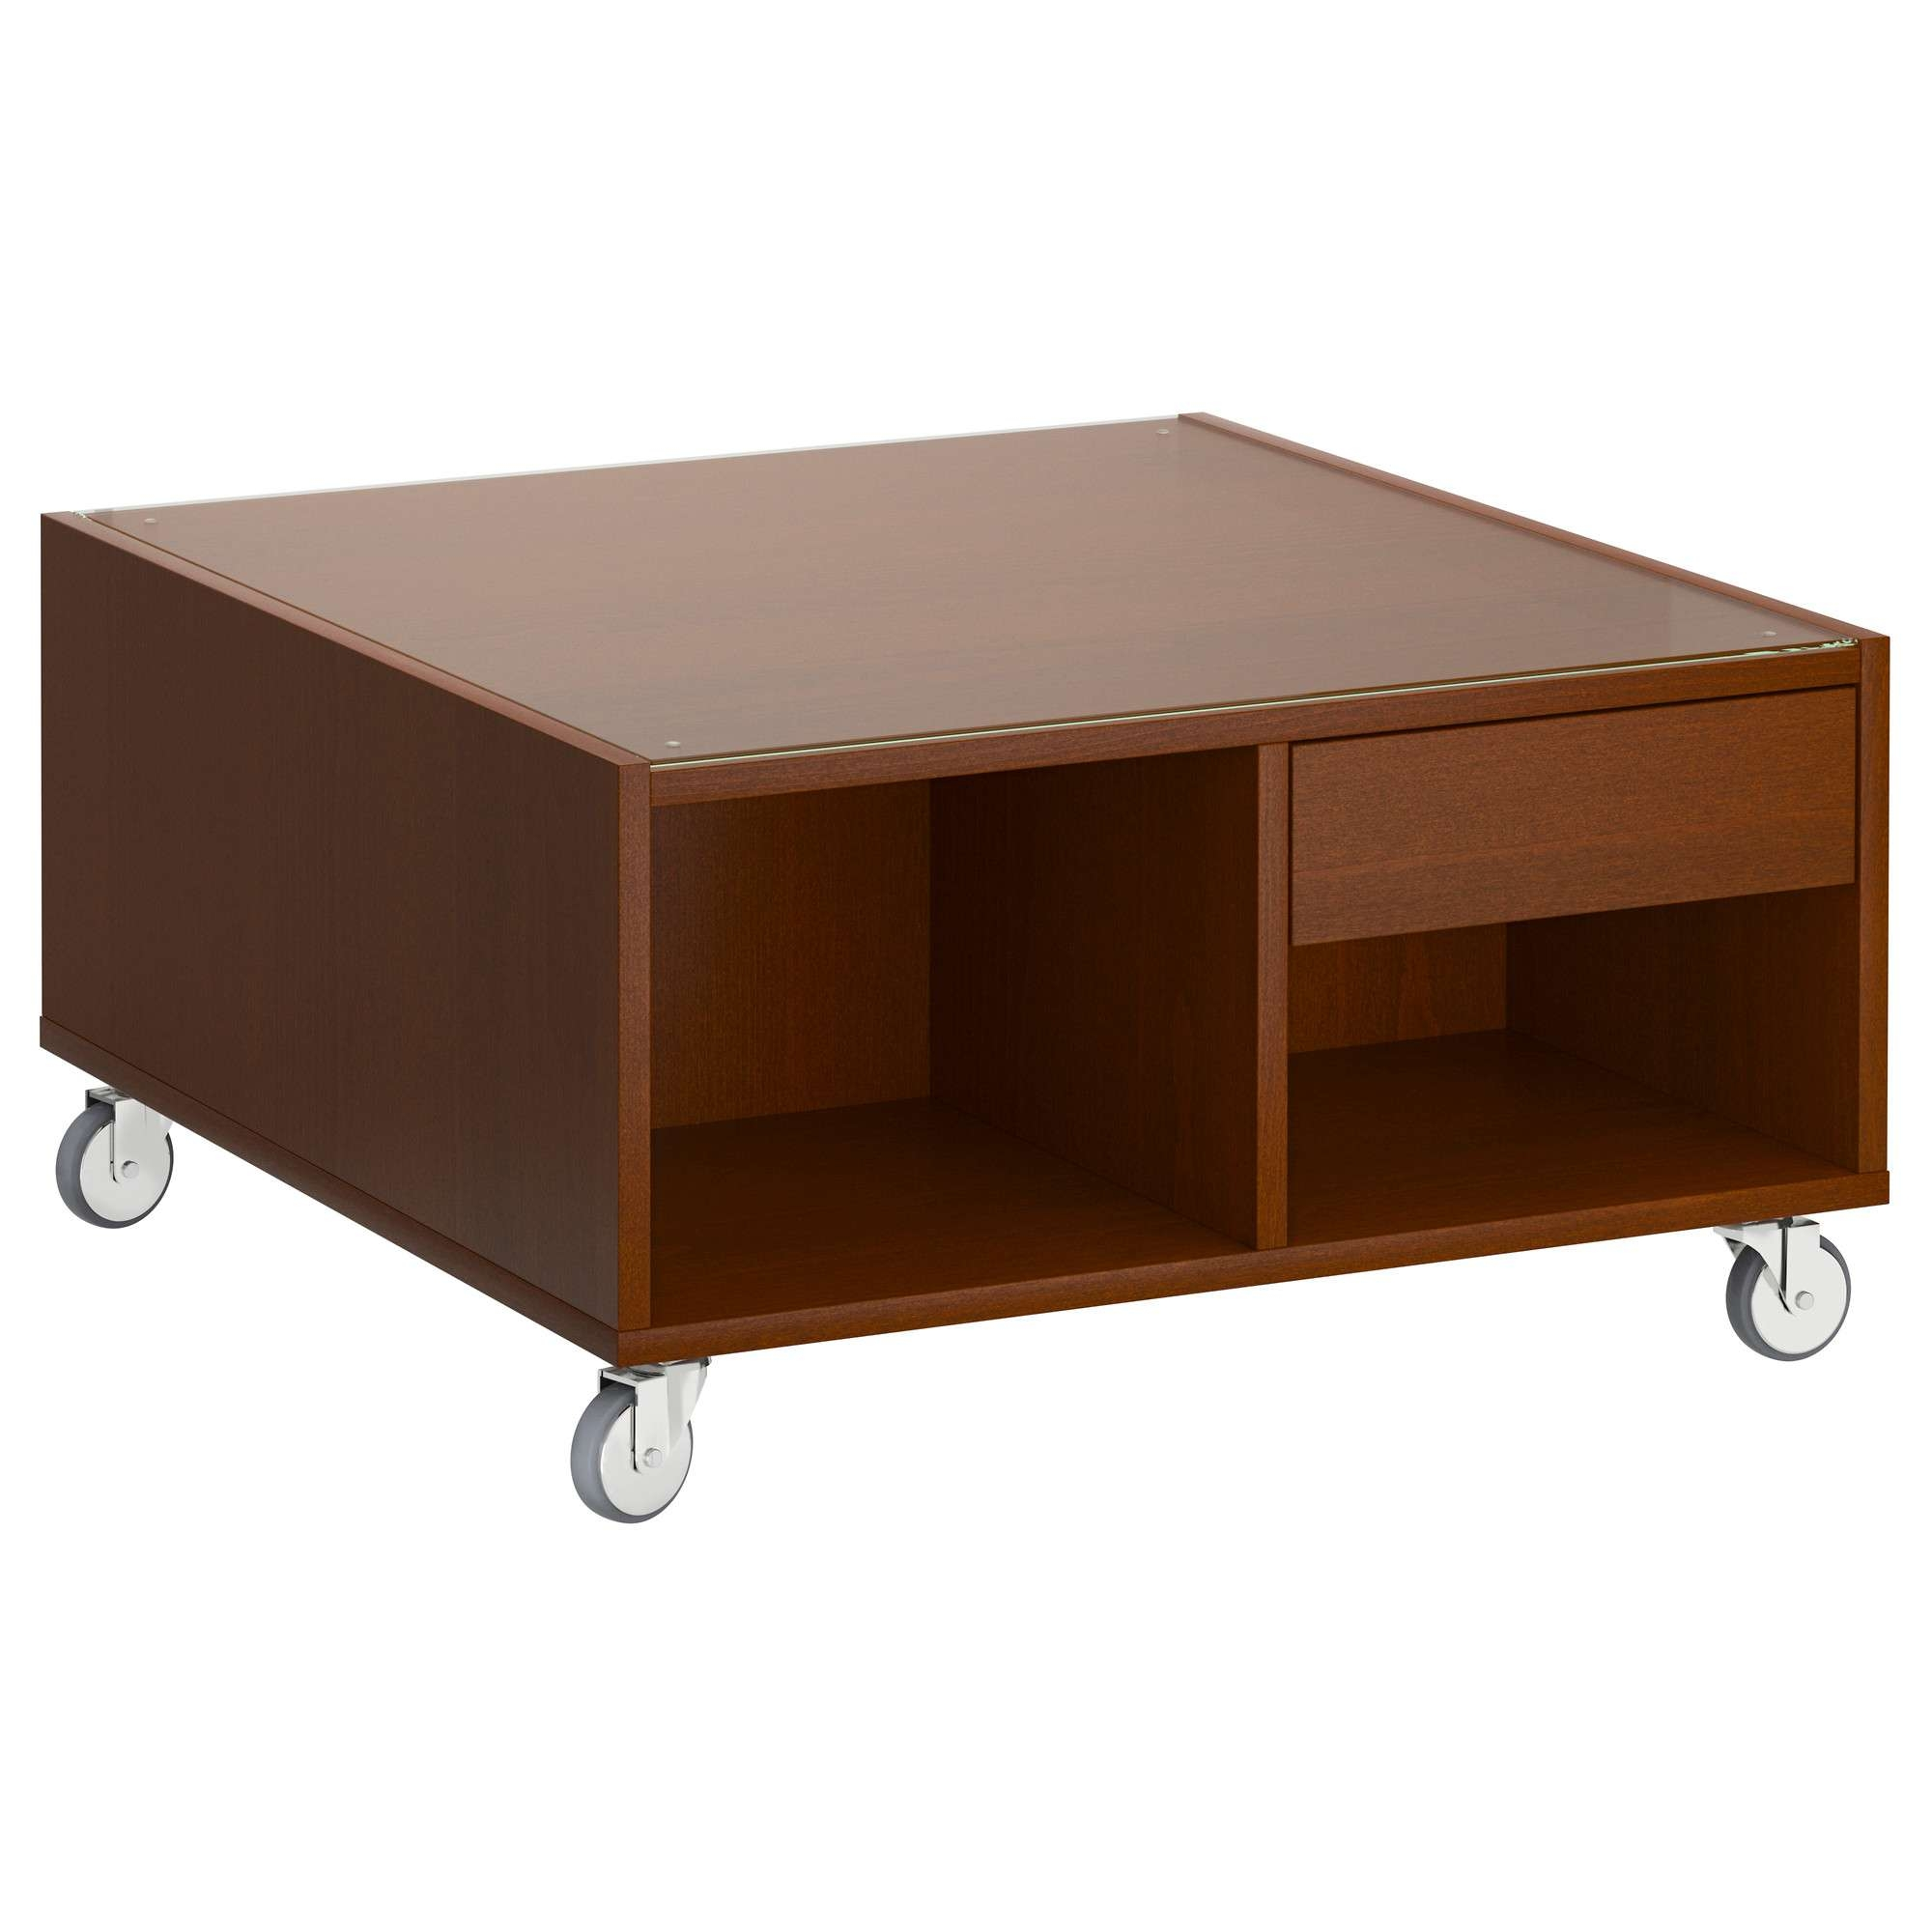 Explore Photos Of Low Coffee Table With Storage (Showing